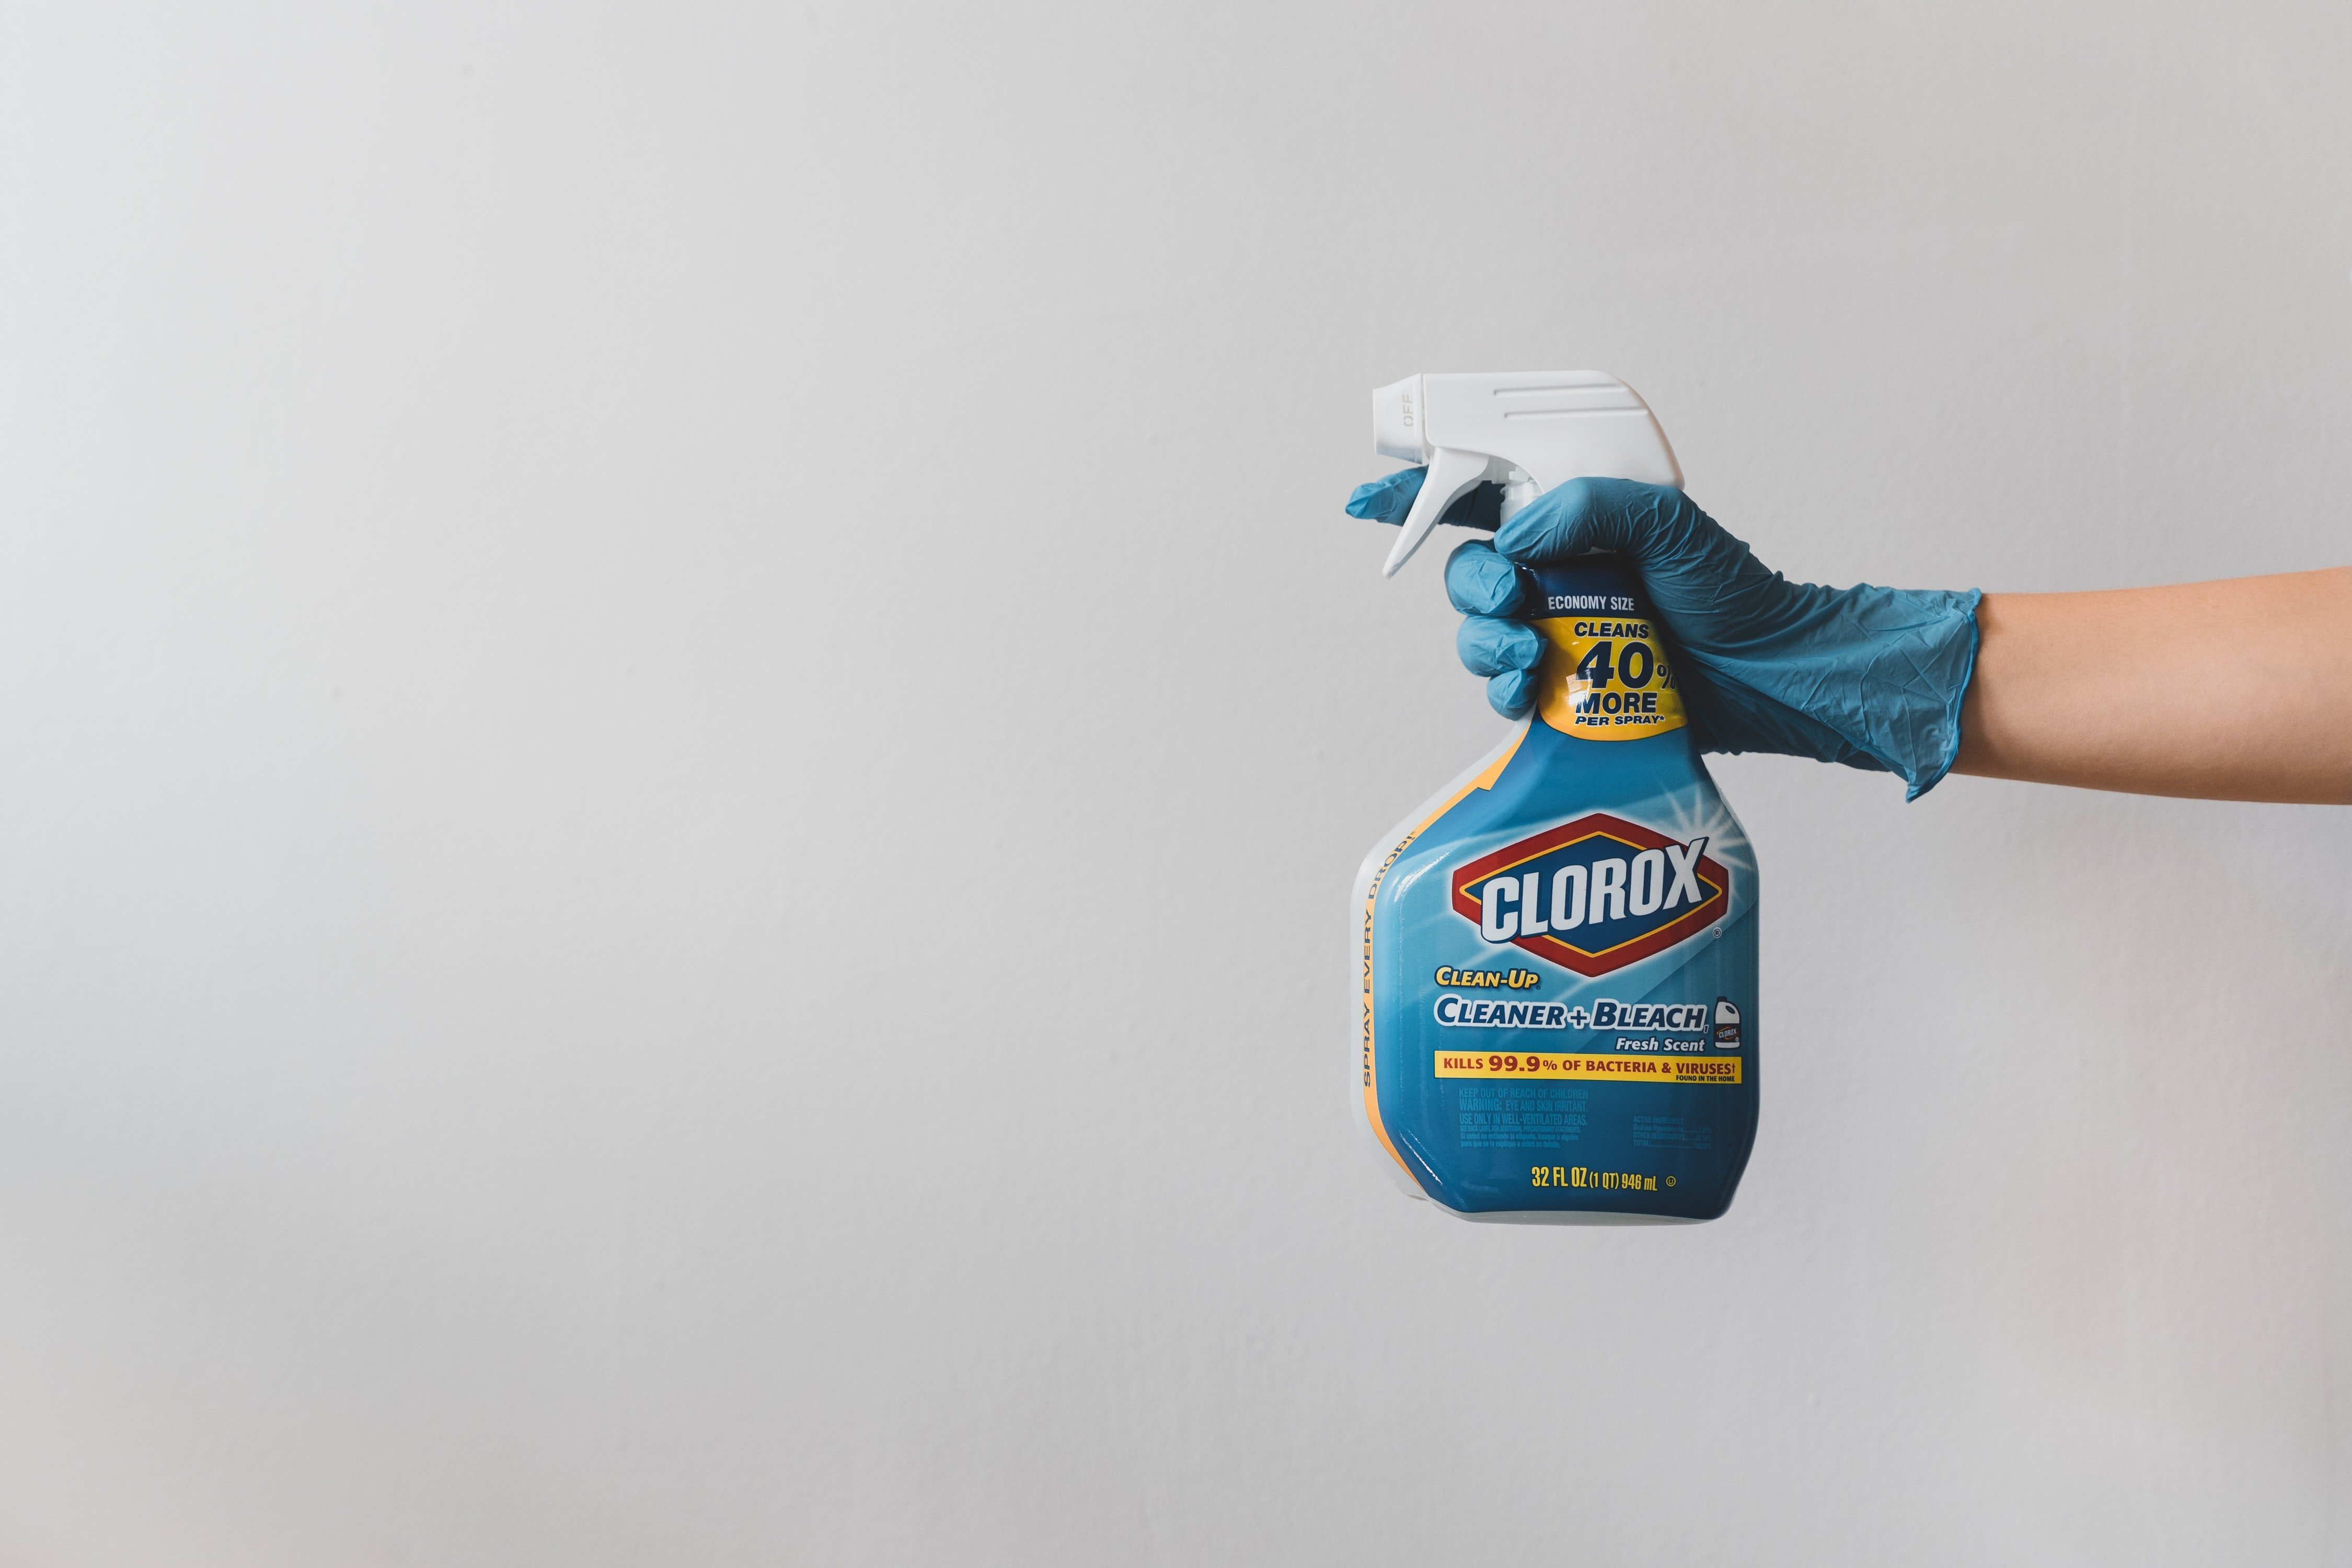 bleach is a must-have cleaning product for a student household